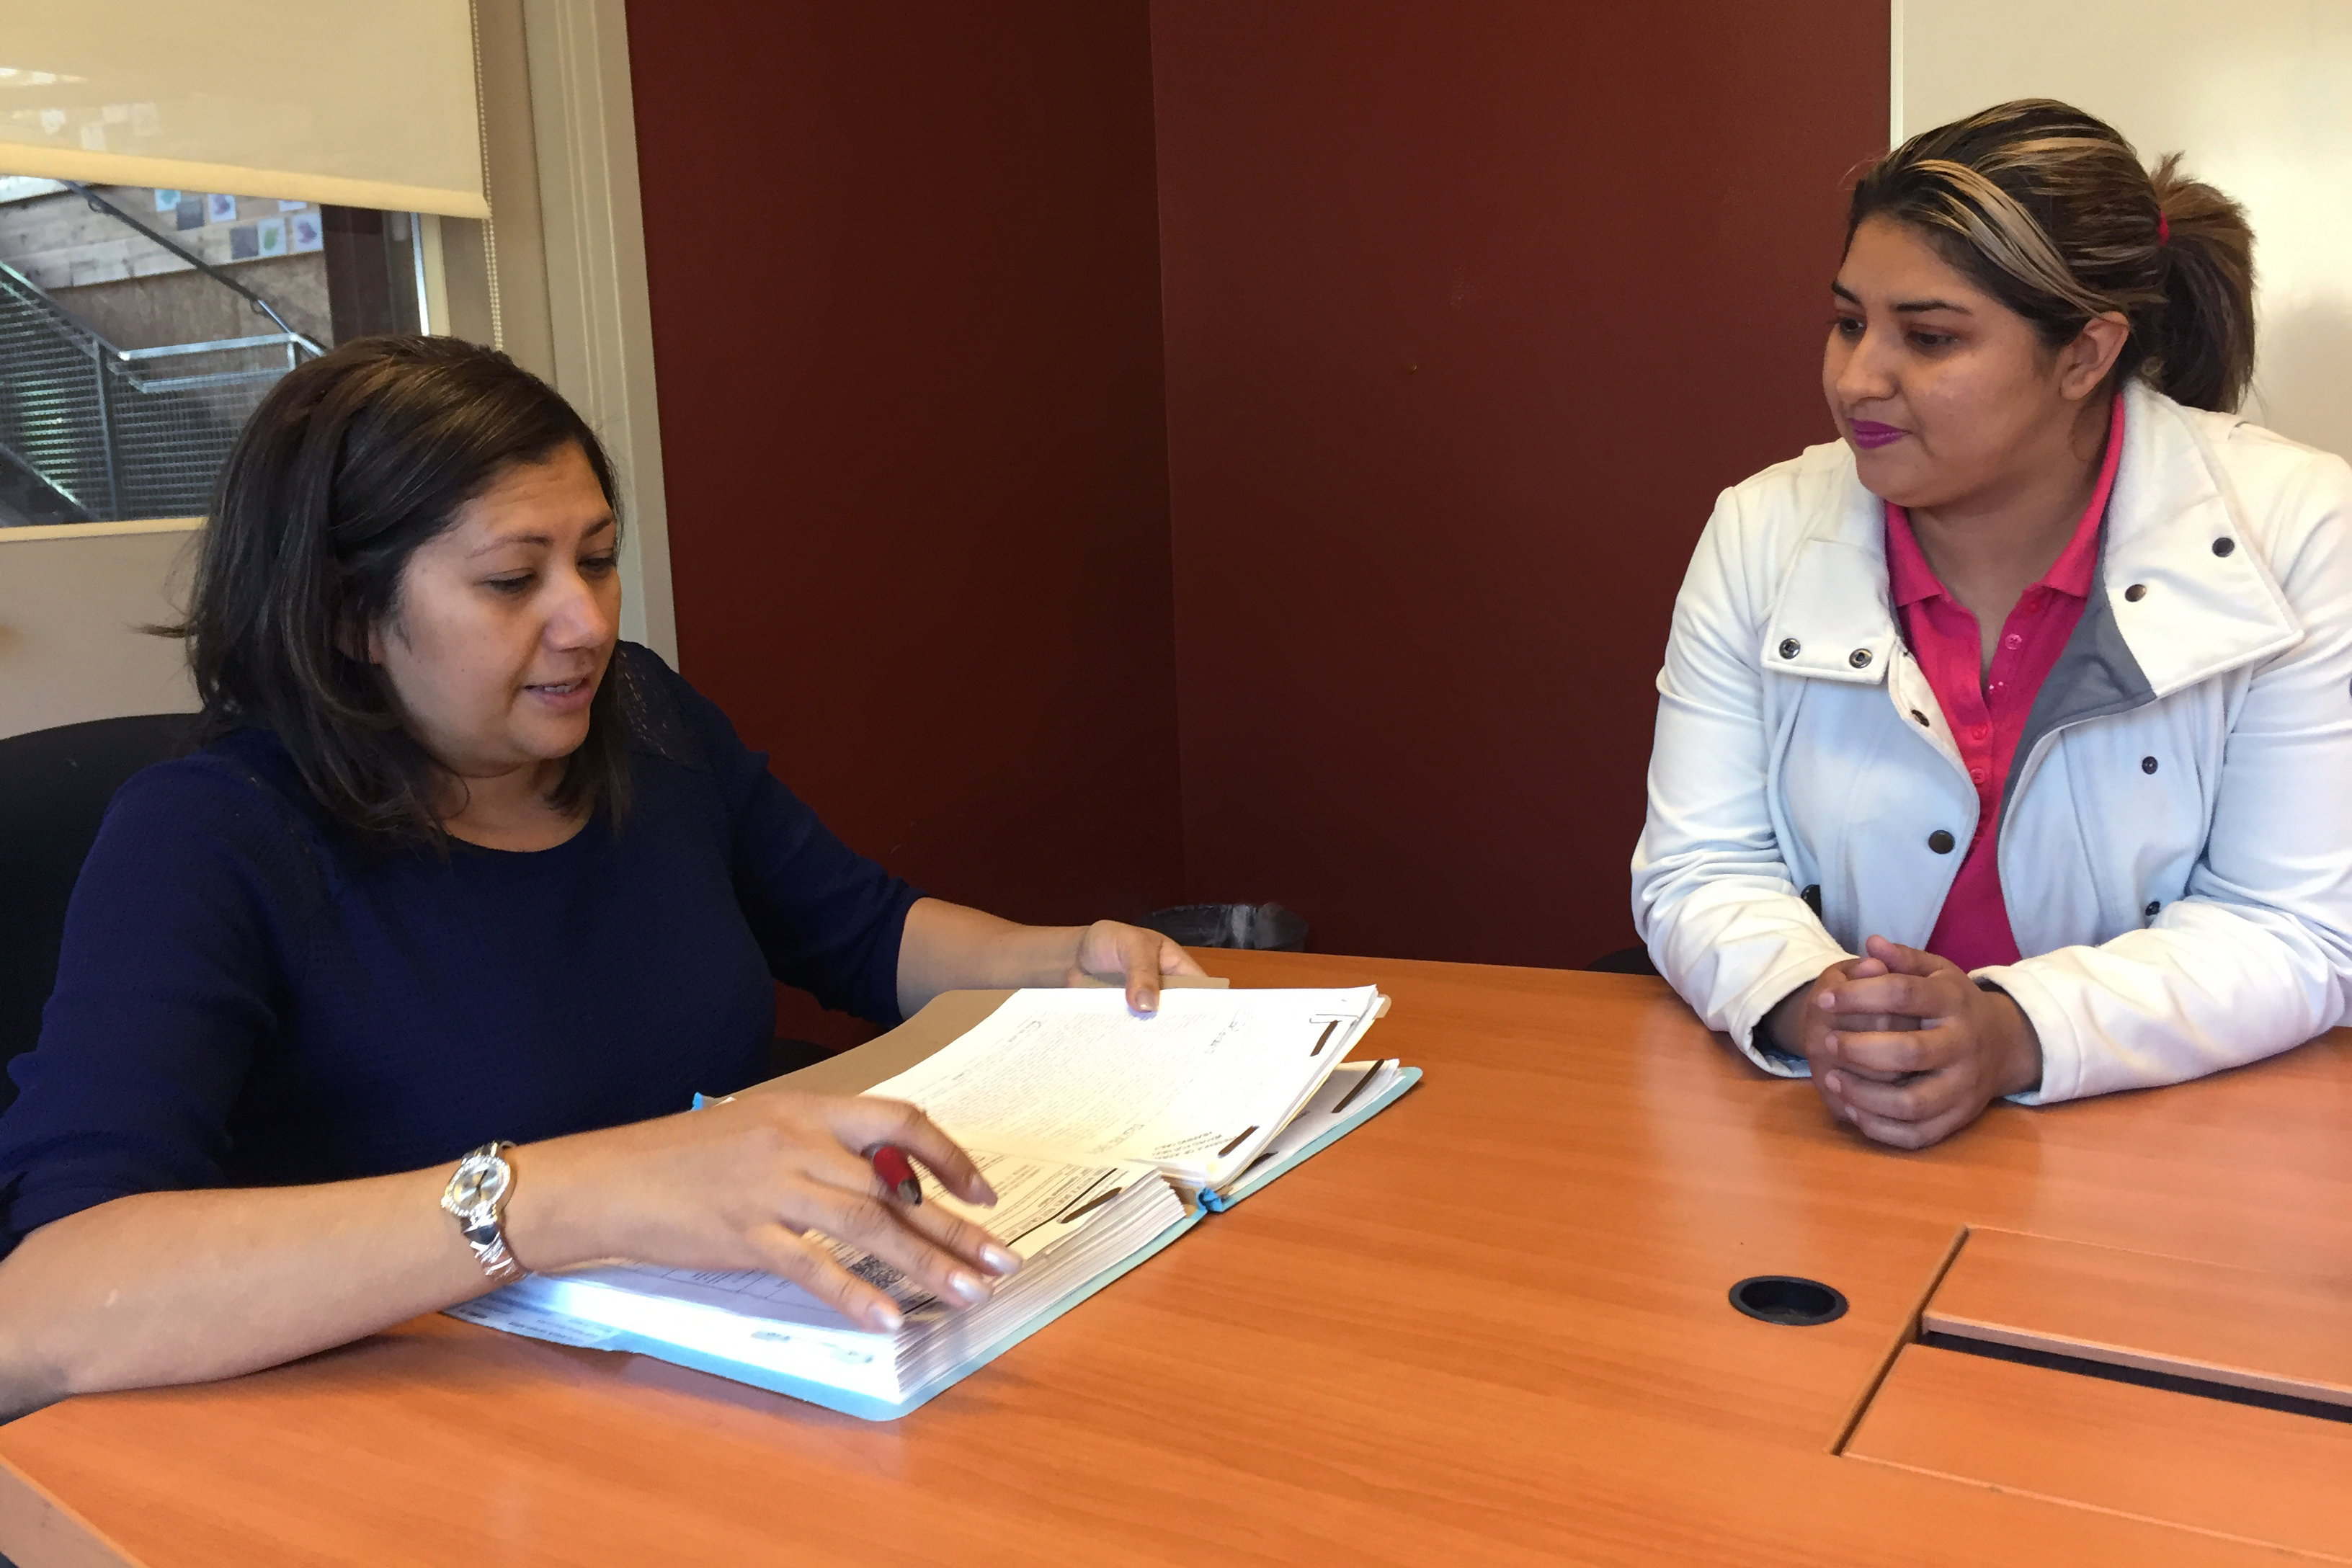 Photo: immigrant legal services 1 | An asylum seeker talks with her lawyer at the Justice and Mercy Legal Aid Center- Natalia V. Navarro